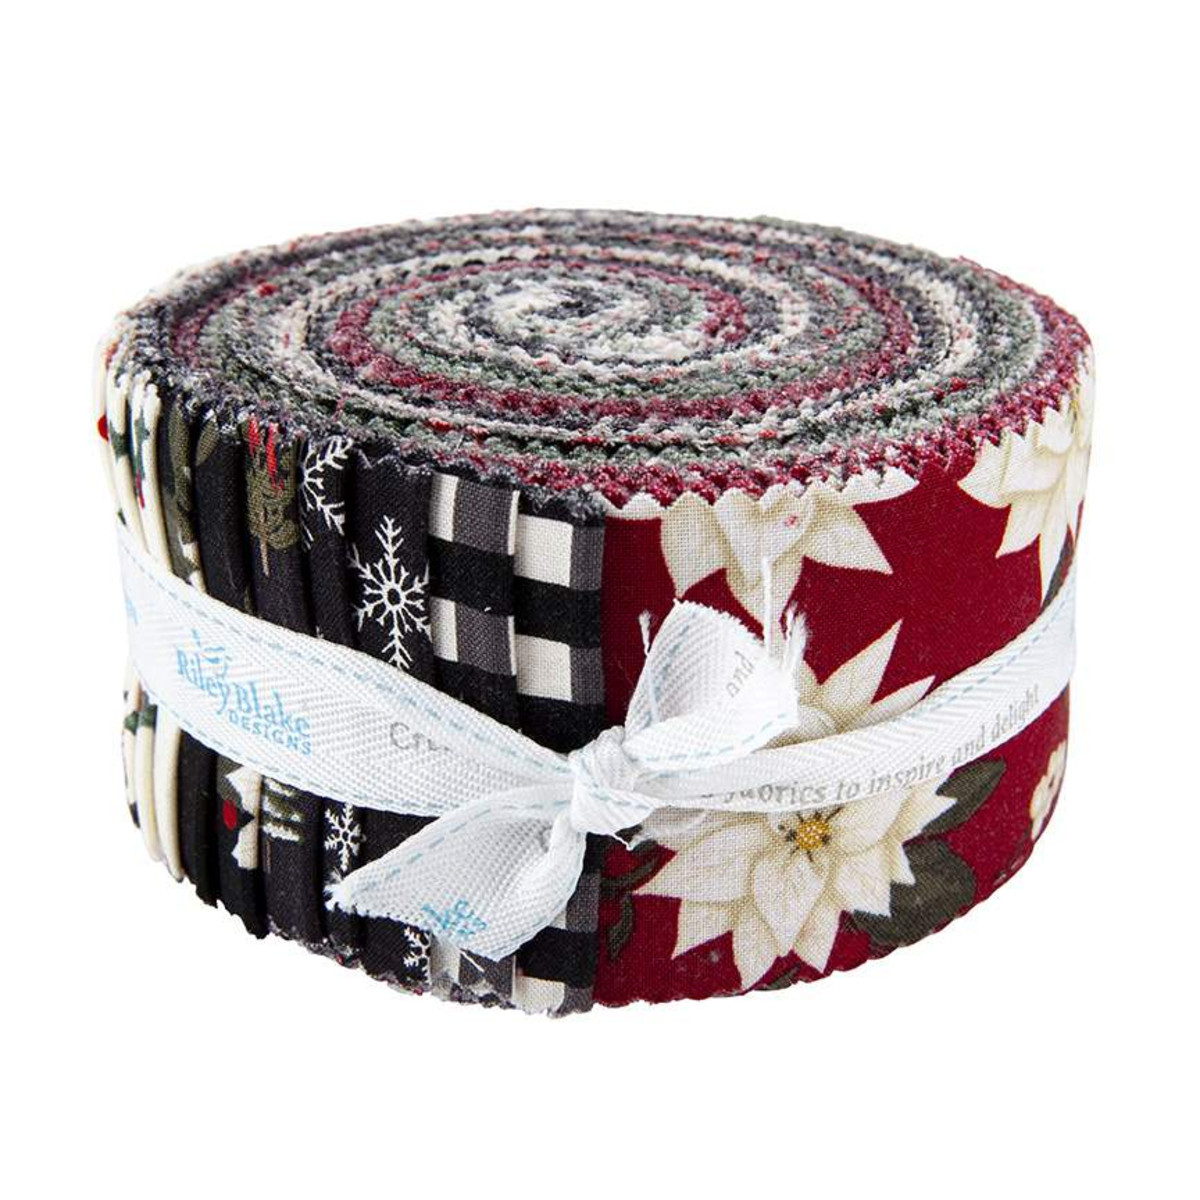 Riley Blake Jelly Roll - Farmhouse Christmas by Echo Park Paper Co